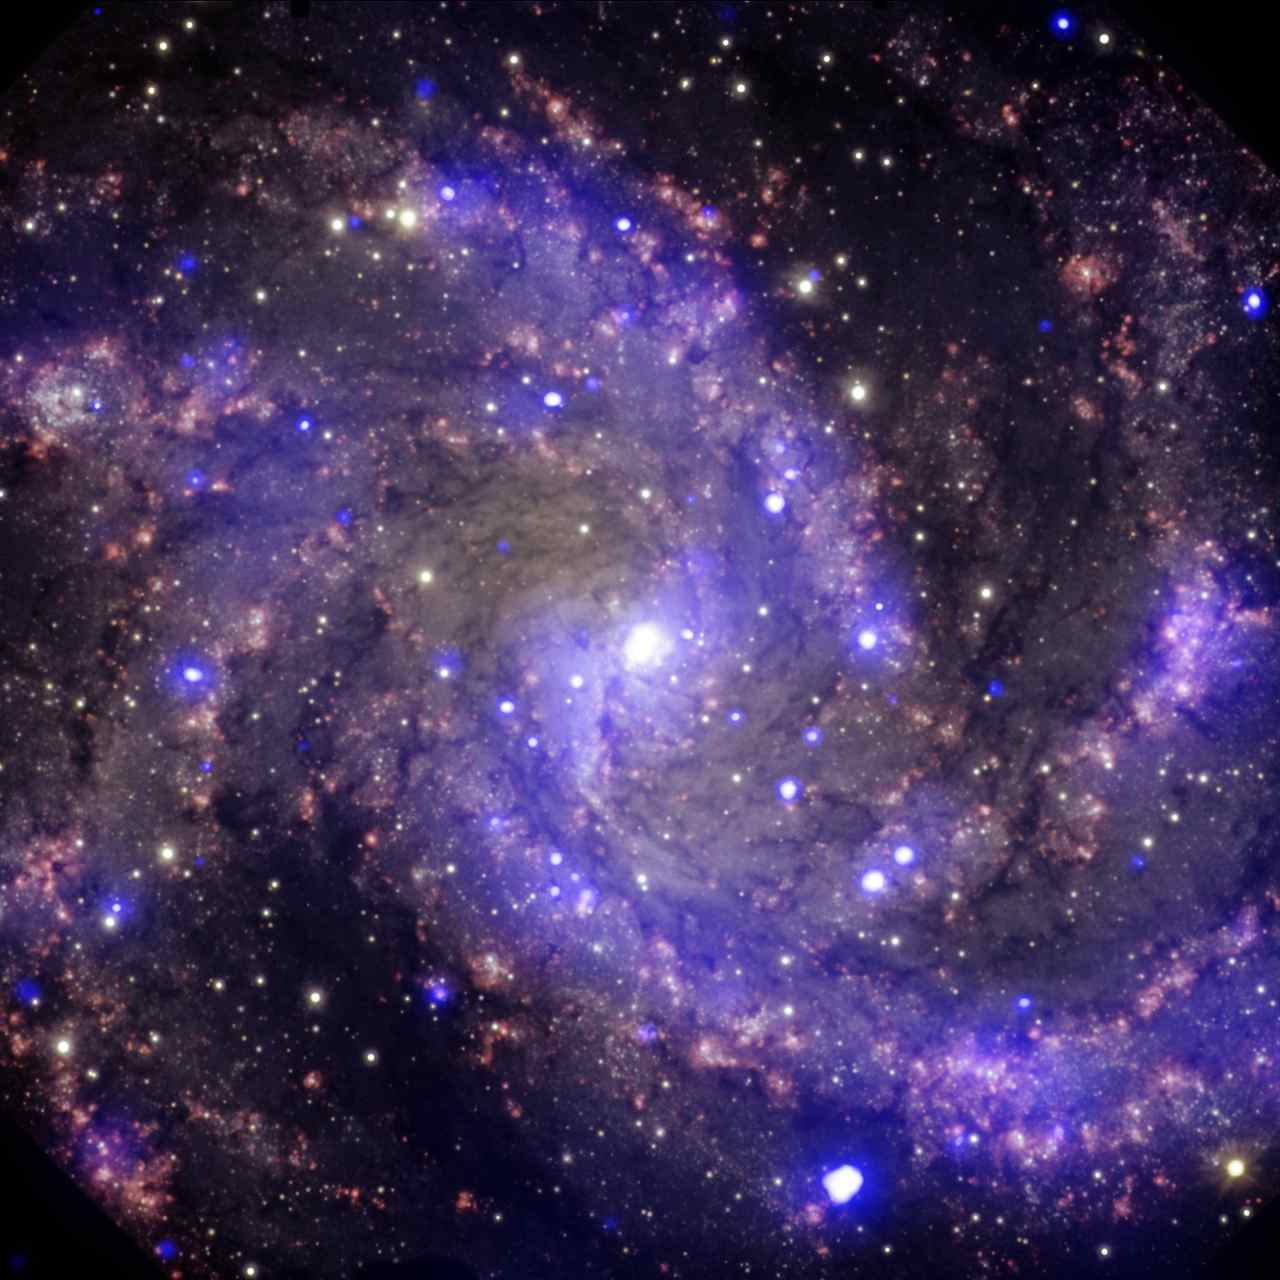 NASA shares Hubble image of dazzling supernova-prone fireworks galaxy NGC 6946